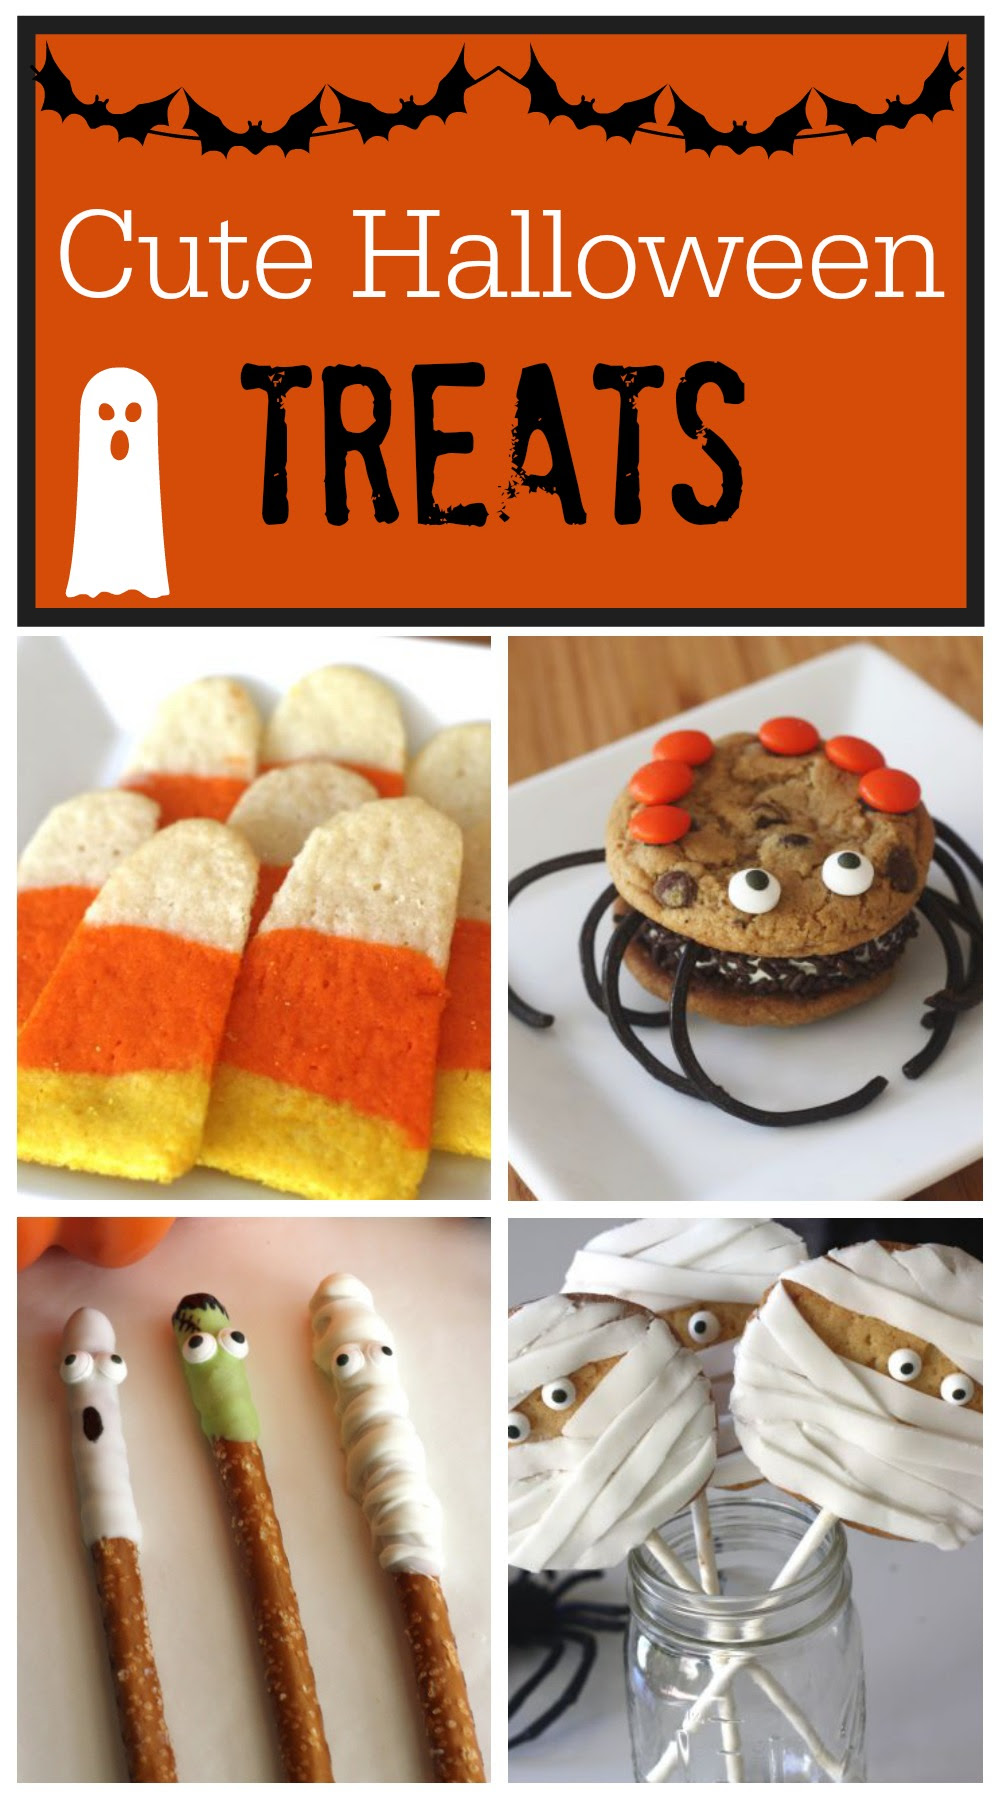 Cute Halloween Treats | Catch My Party